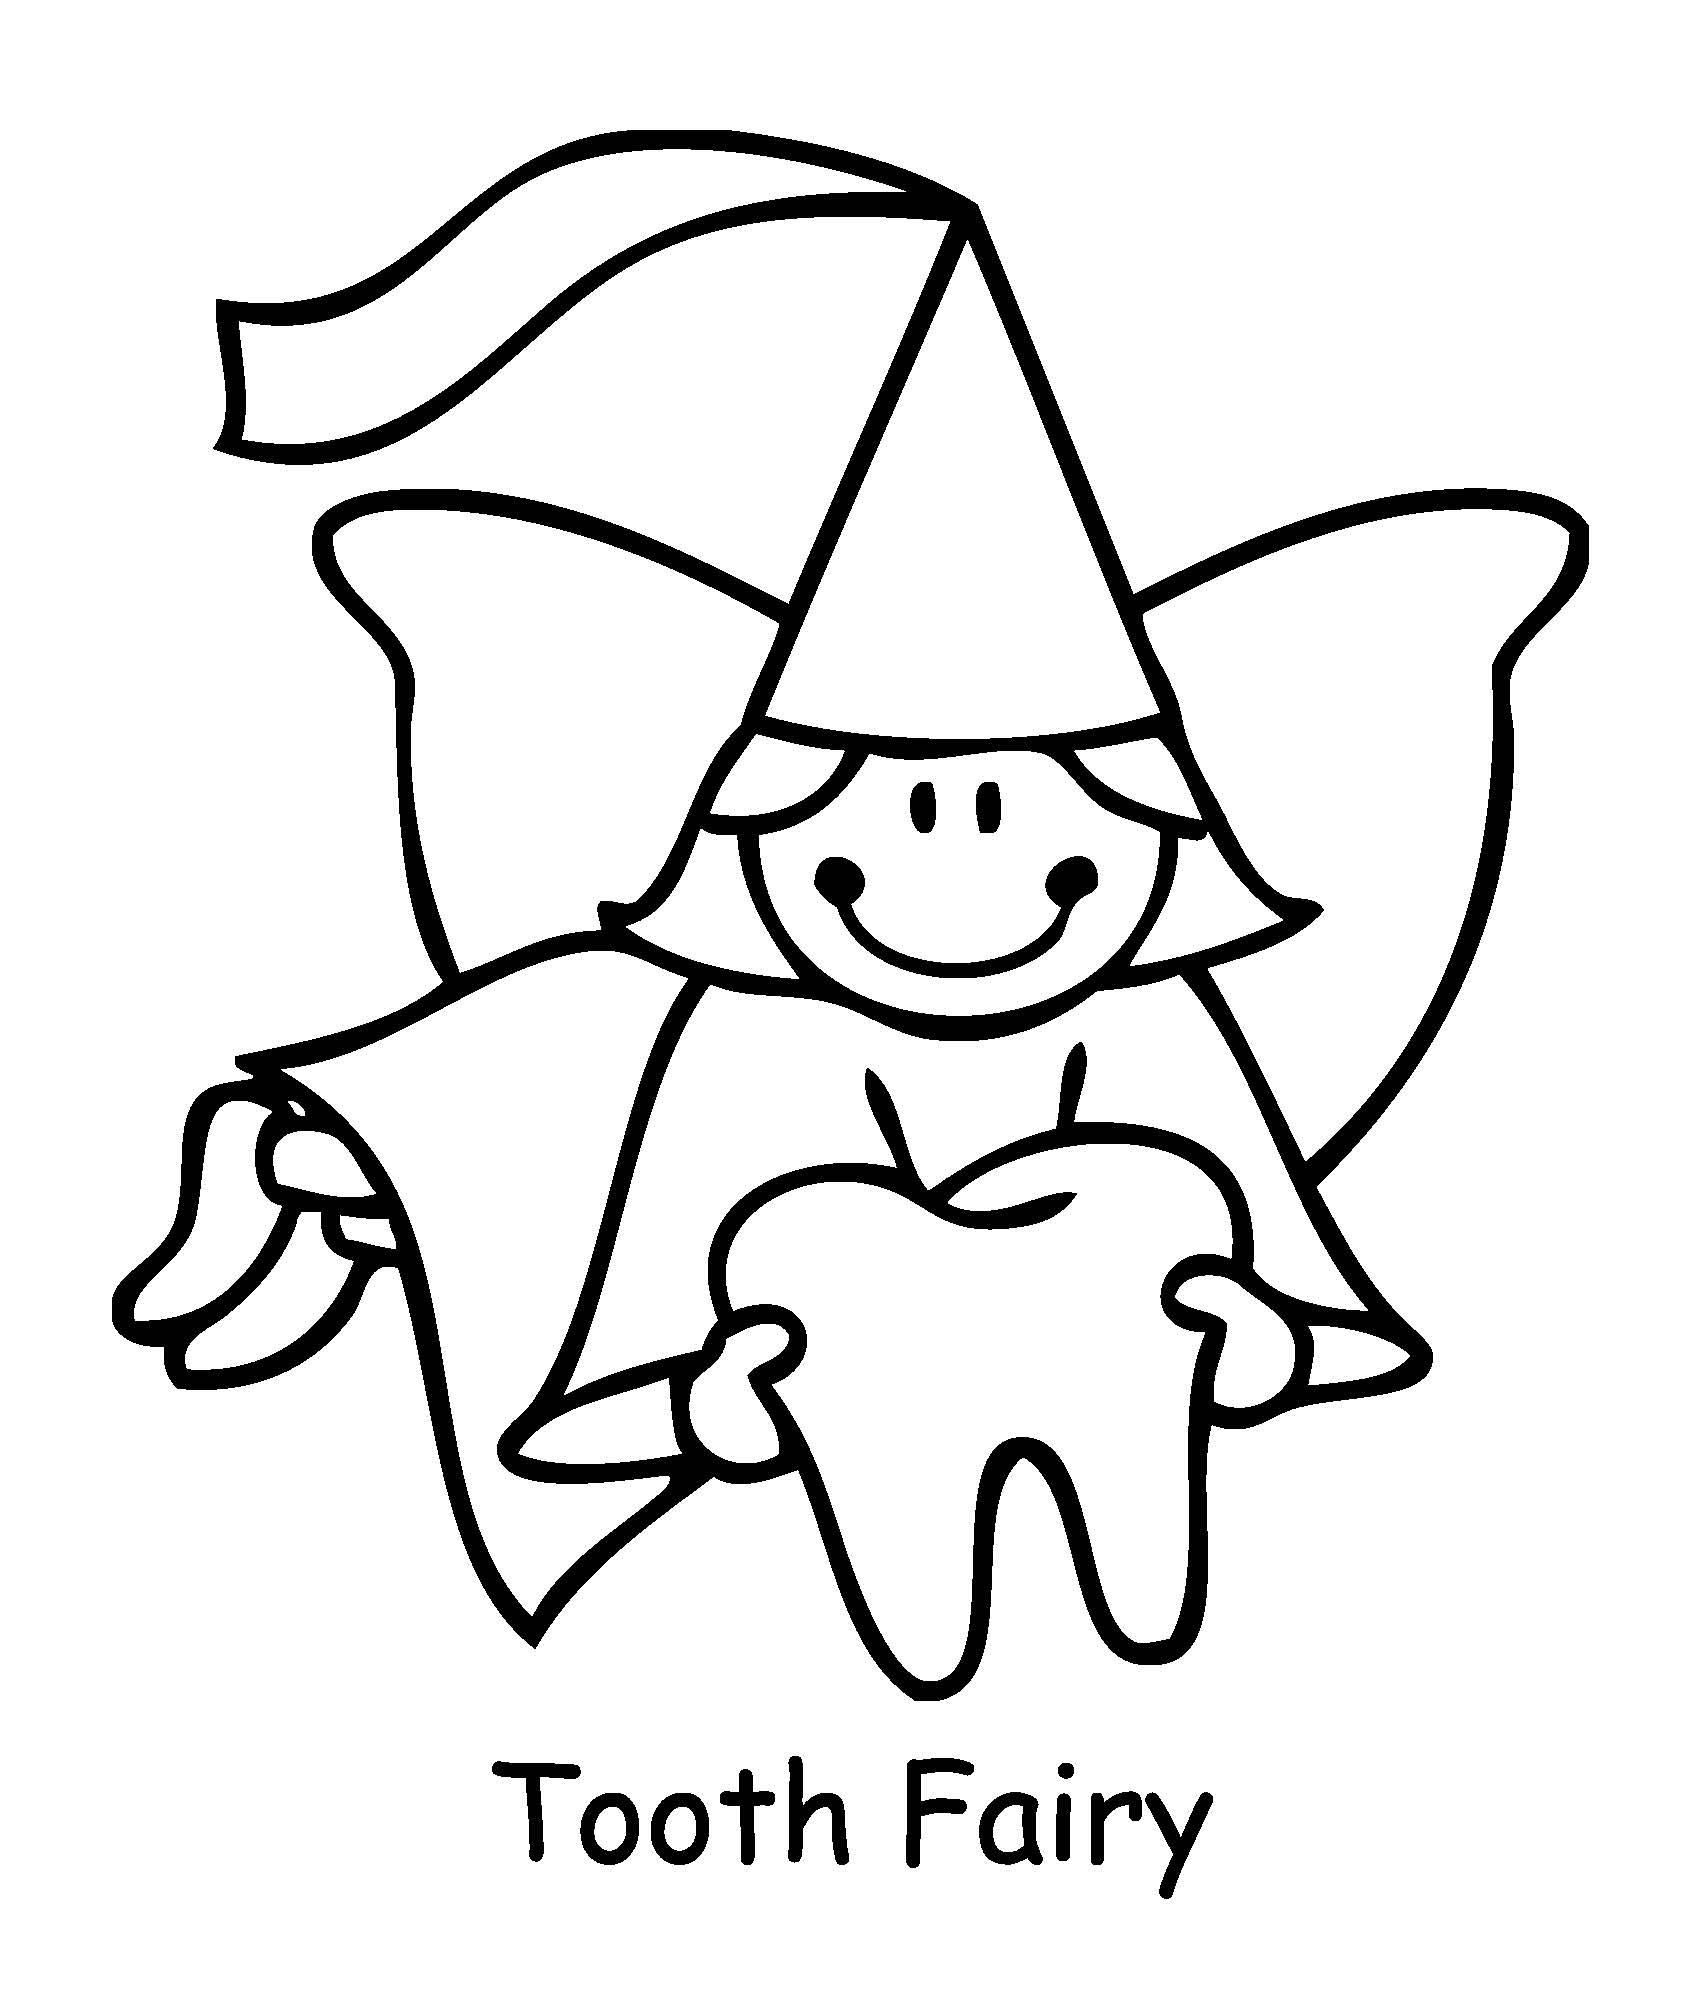 1701x2005 Revisited Shark Teeth Coloring Pages For Tooth Fairy Kindergarten